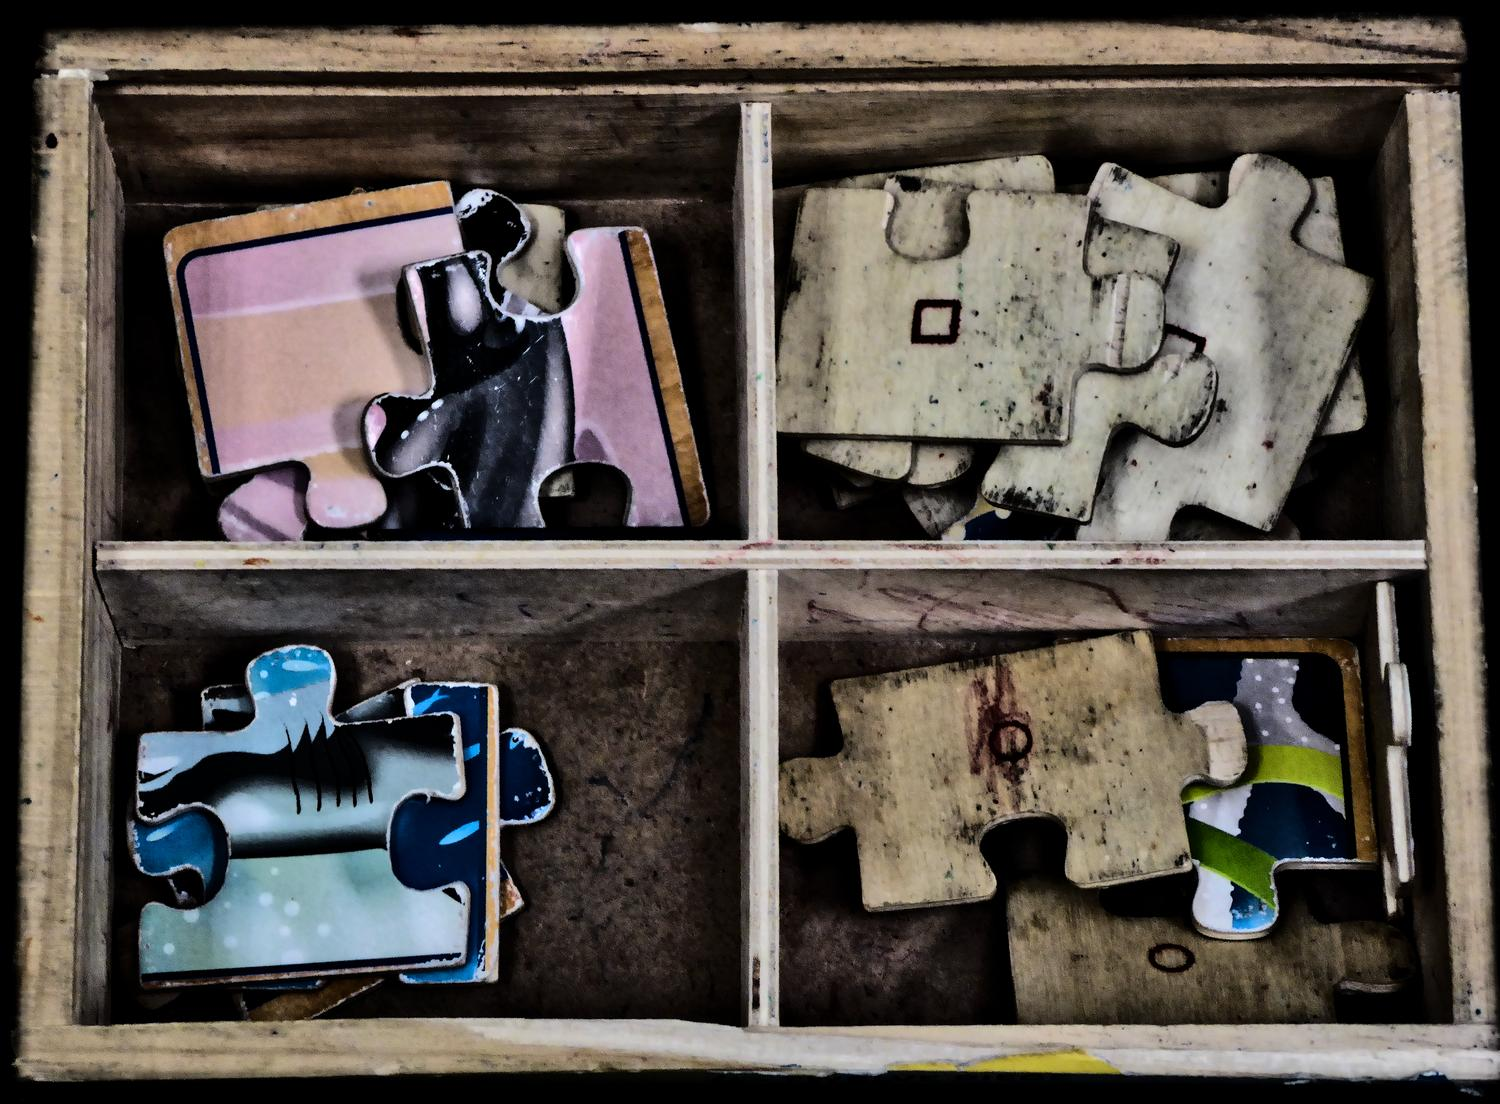 -  A child's puzzle box. - Panasonic DMC-ZS40 - Panasonic DMC-TZ60 - - Tony Karp, design, art, photography, techno-impressionist, techno-impressionism, aerial photography , drone , drones , dji , mavic pro , video , 3D printing - Books -